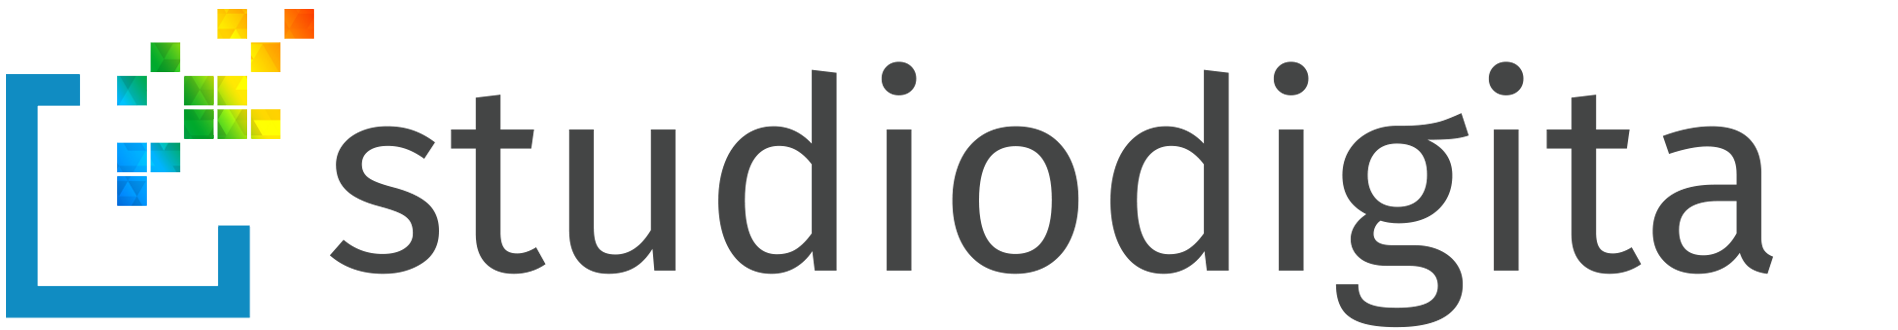 studio-digita